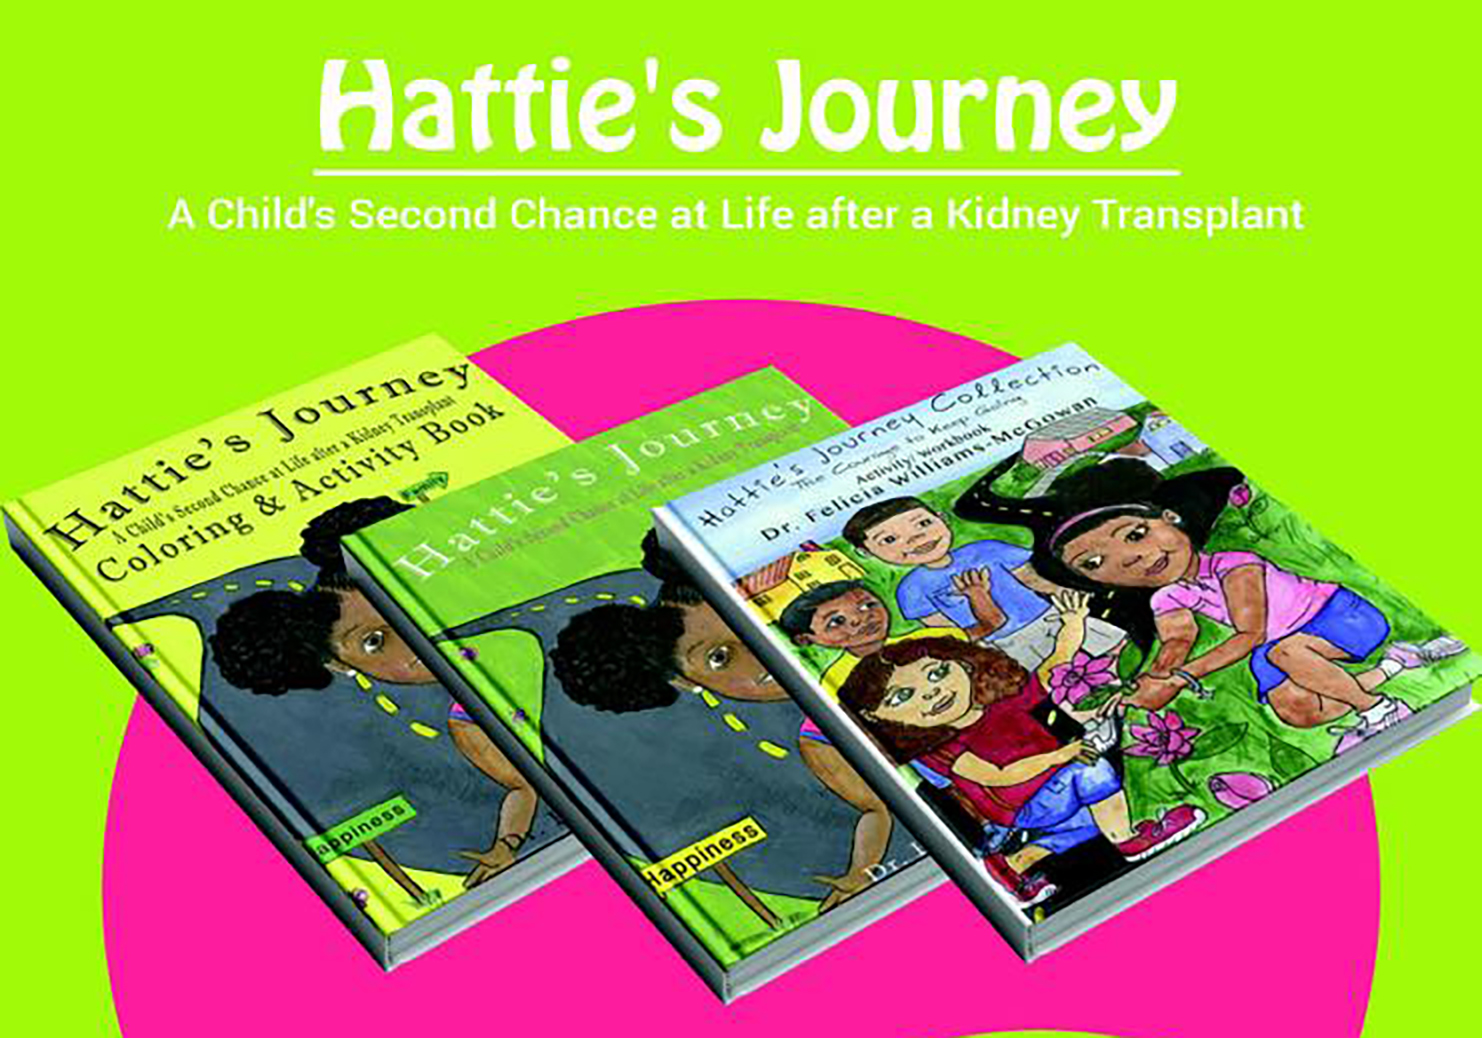 Coloring books for childhood diseases - In The Future Dr Williams Mcgowan Hopes To Turn Hattie S Journey Into A Cartoon Series And Movie She Would Also Like Create The Hattie S Journey Dolls